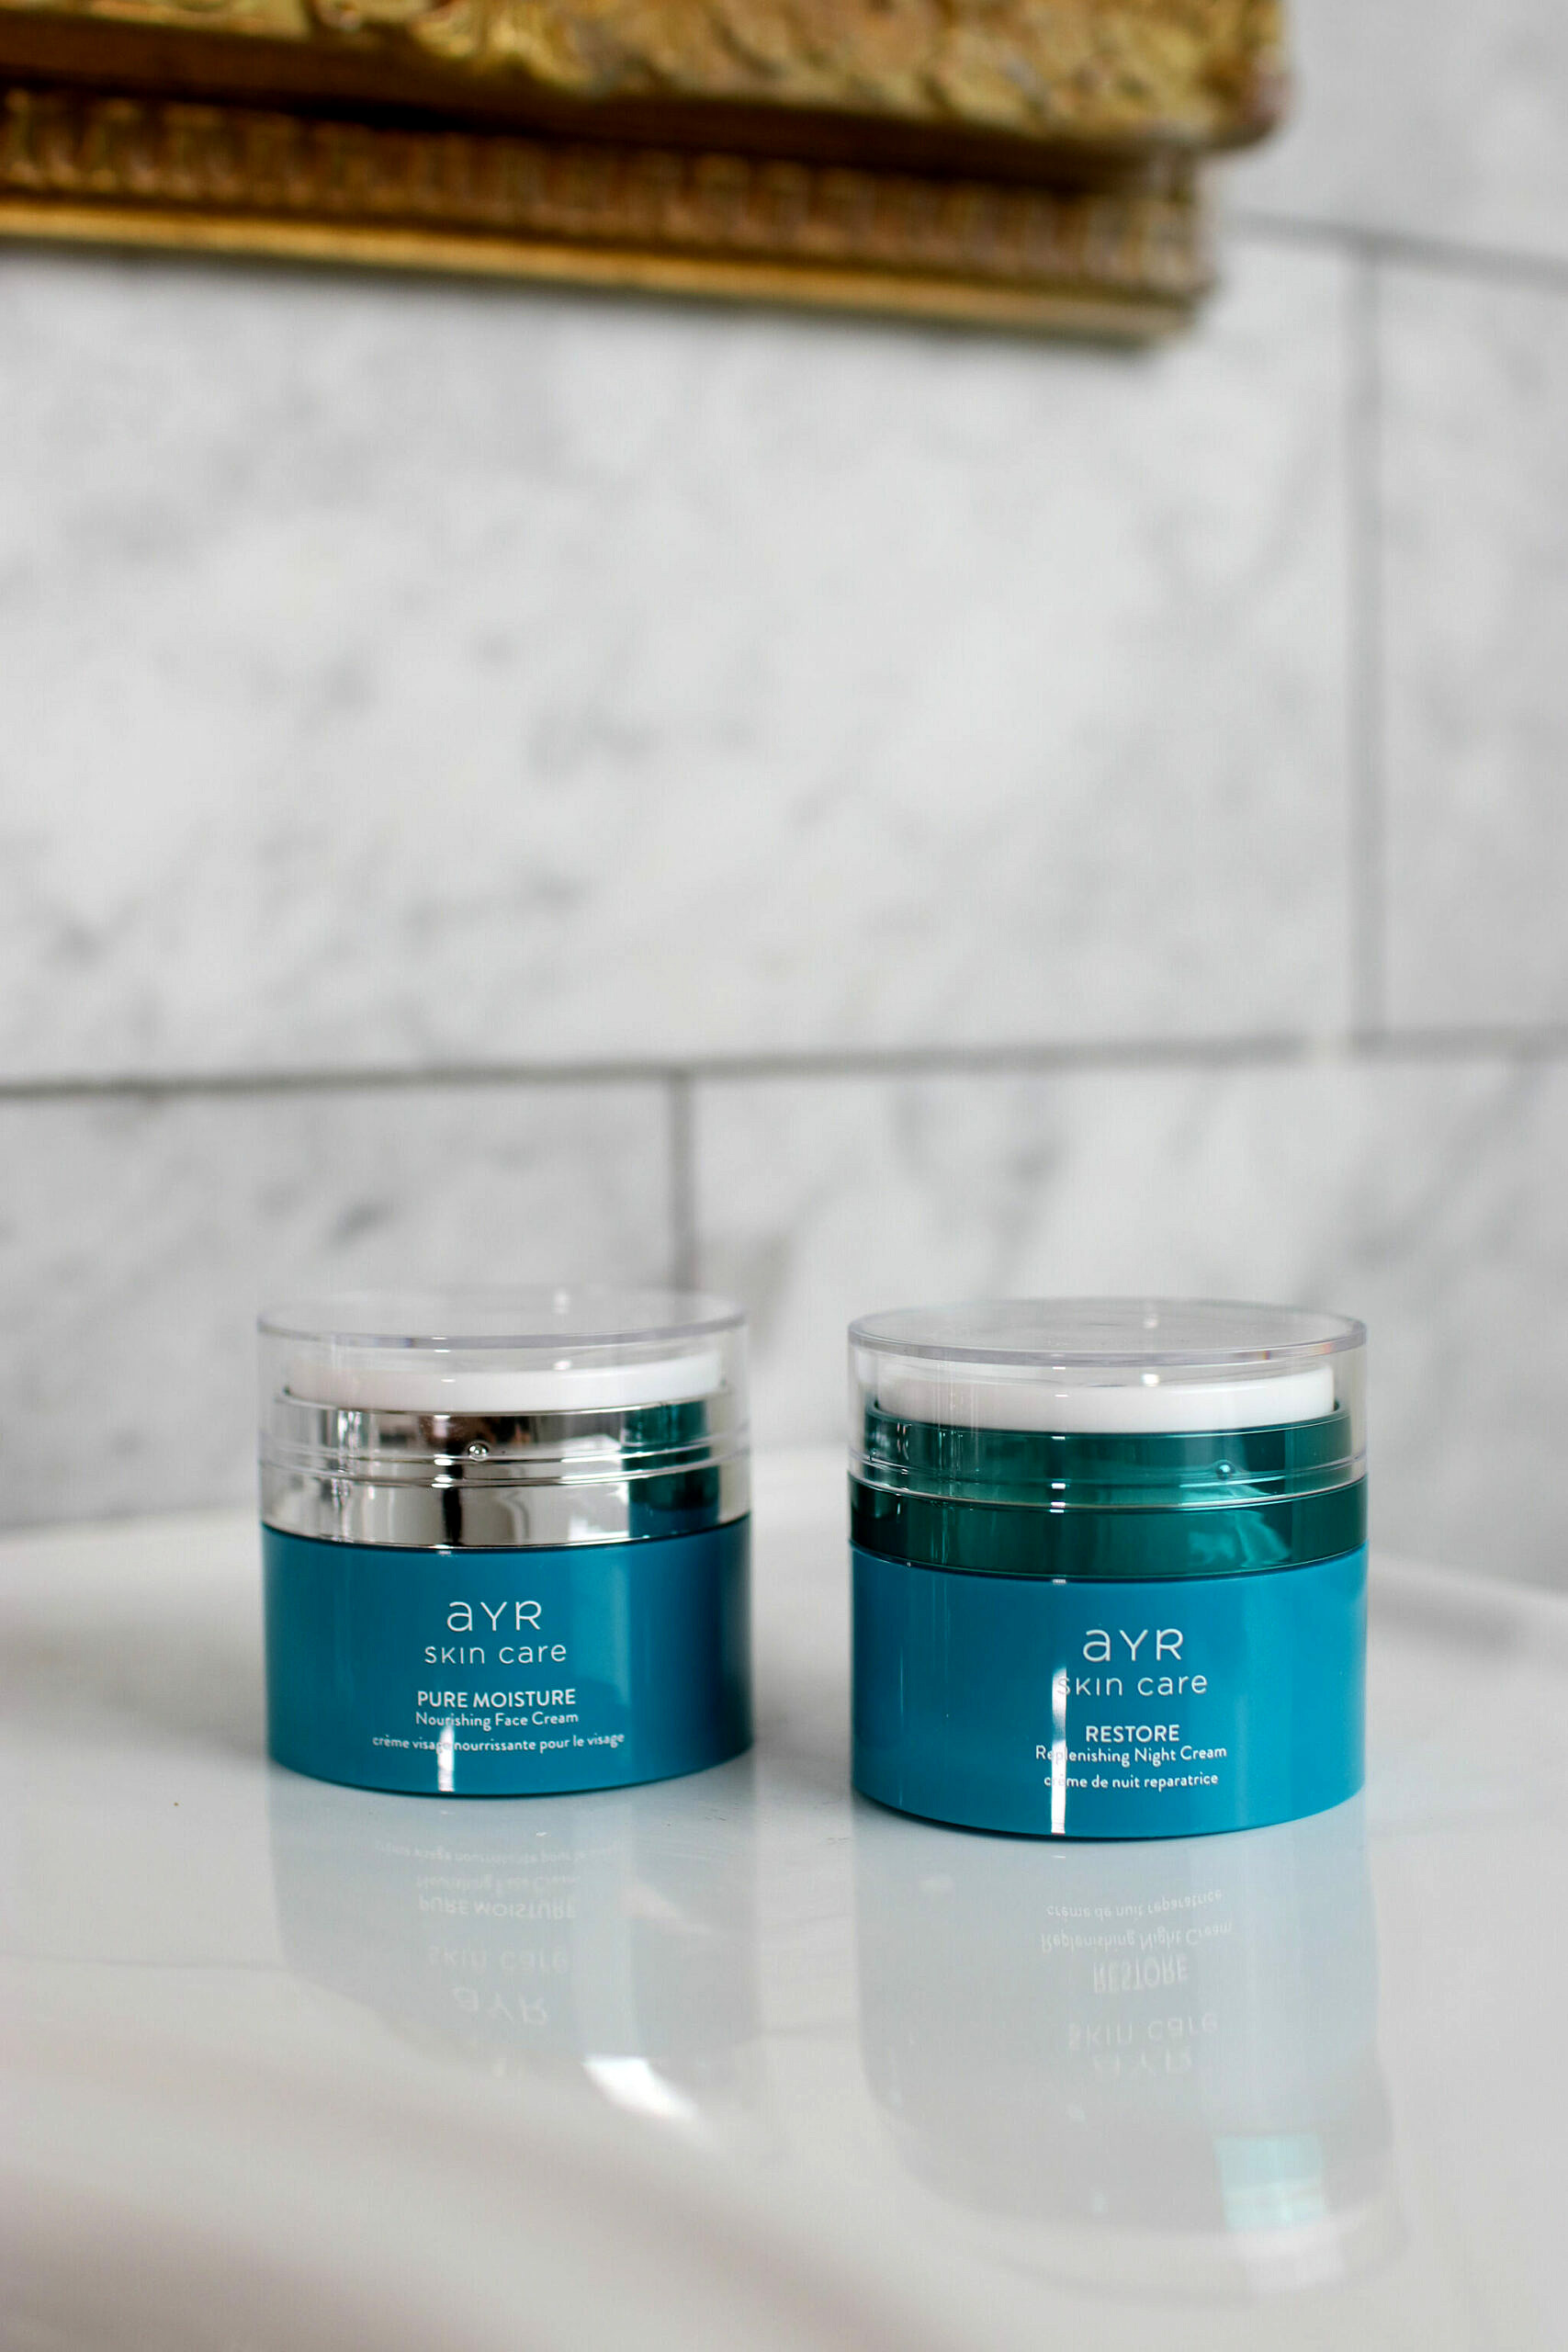 AYR Skincare Products | Organic and Carefully Sourced Natural Ingredients | Pure Moisture Nourishing Face Cream and Restore Replenishing Night Cream